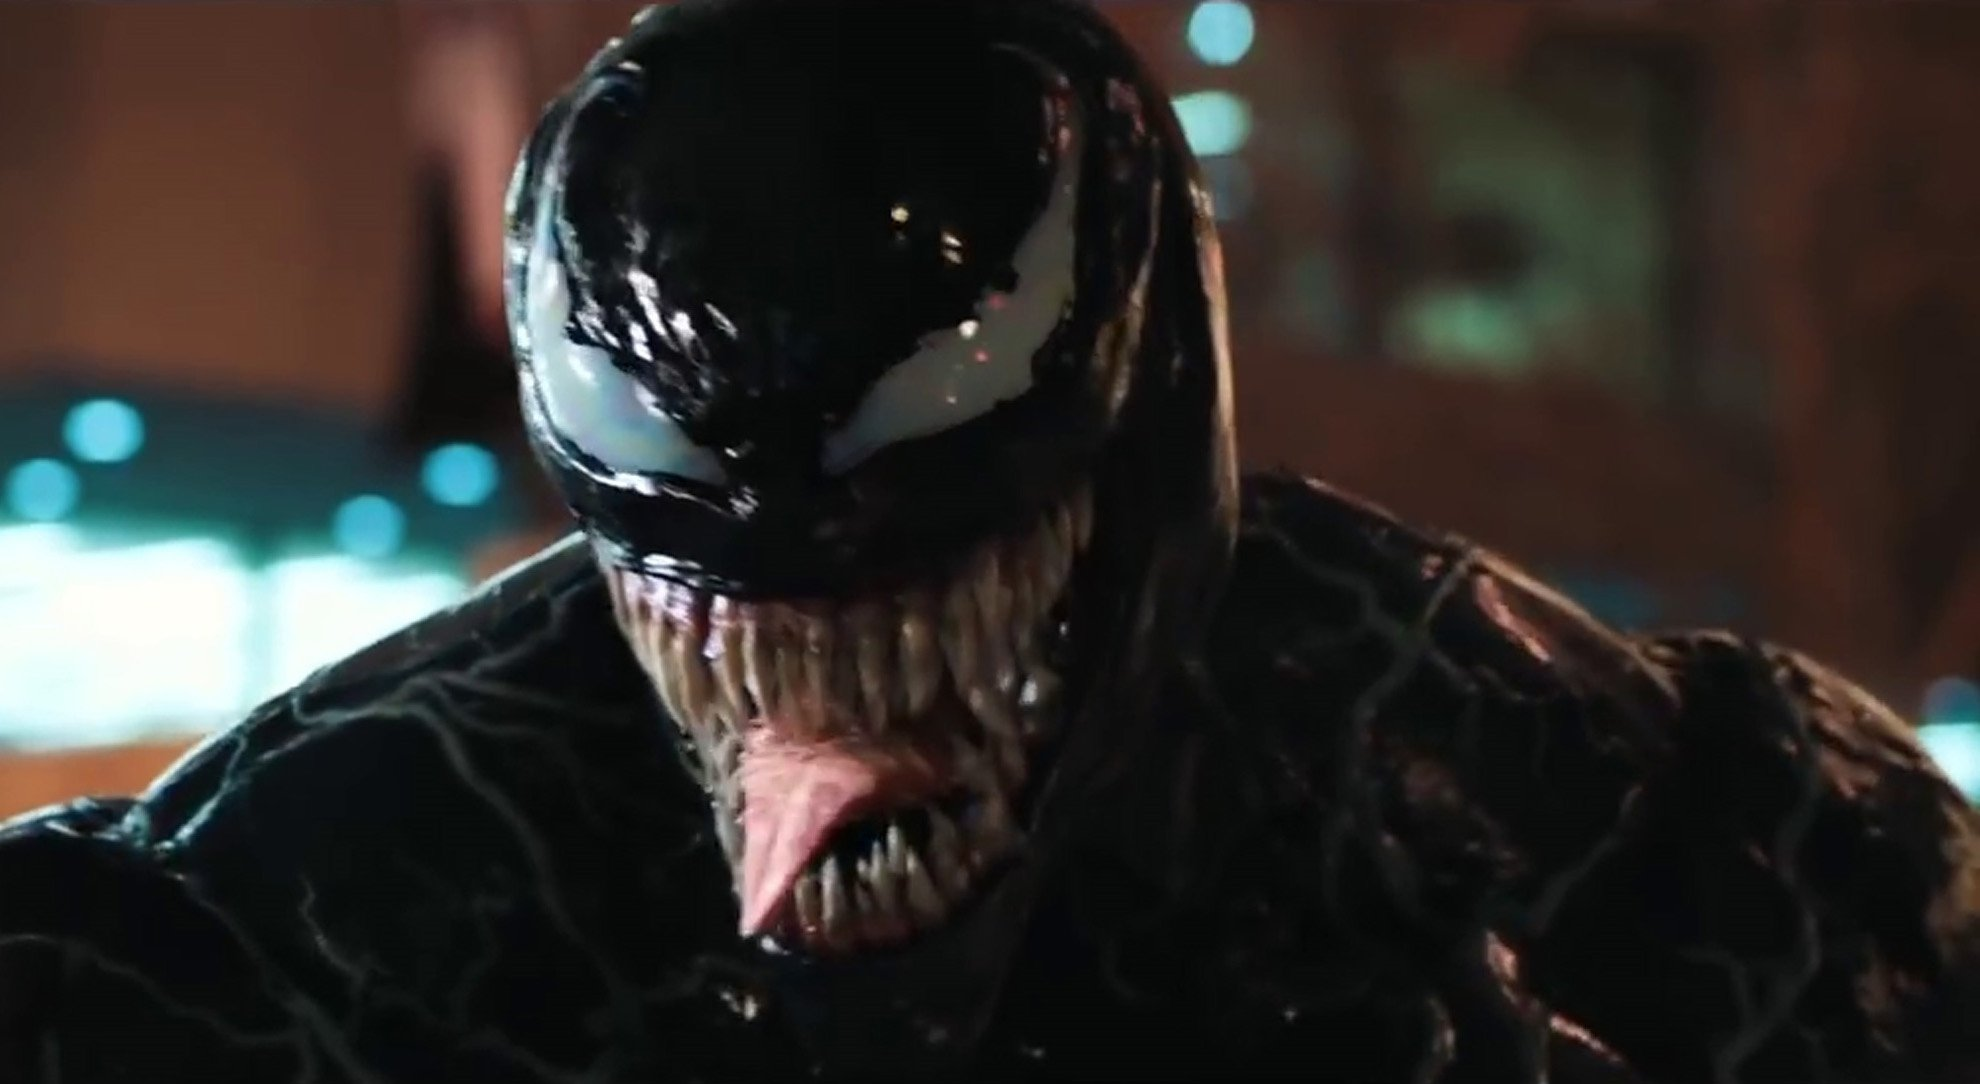 When is the Venom release date and who is in the cast?